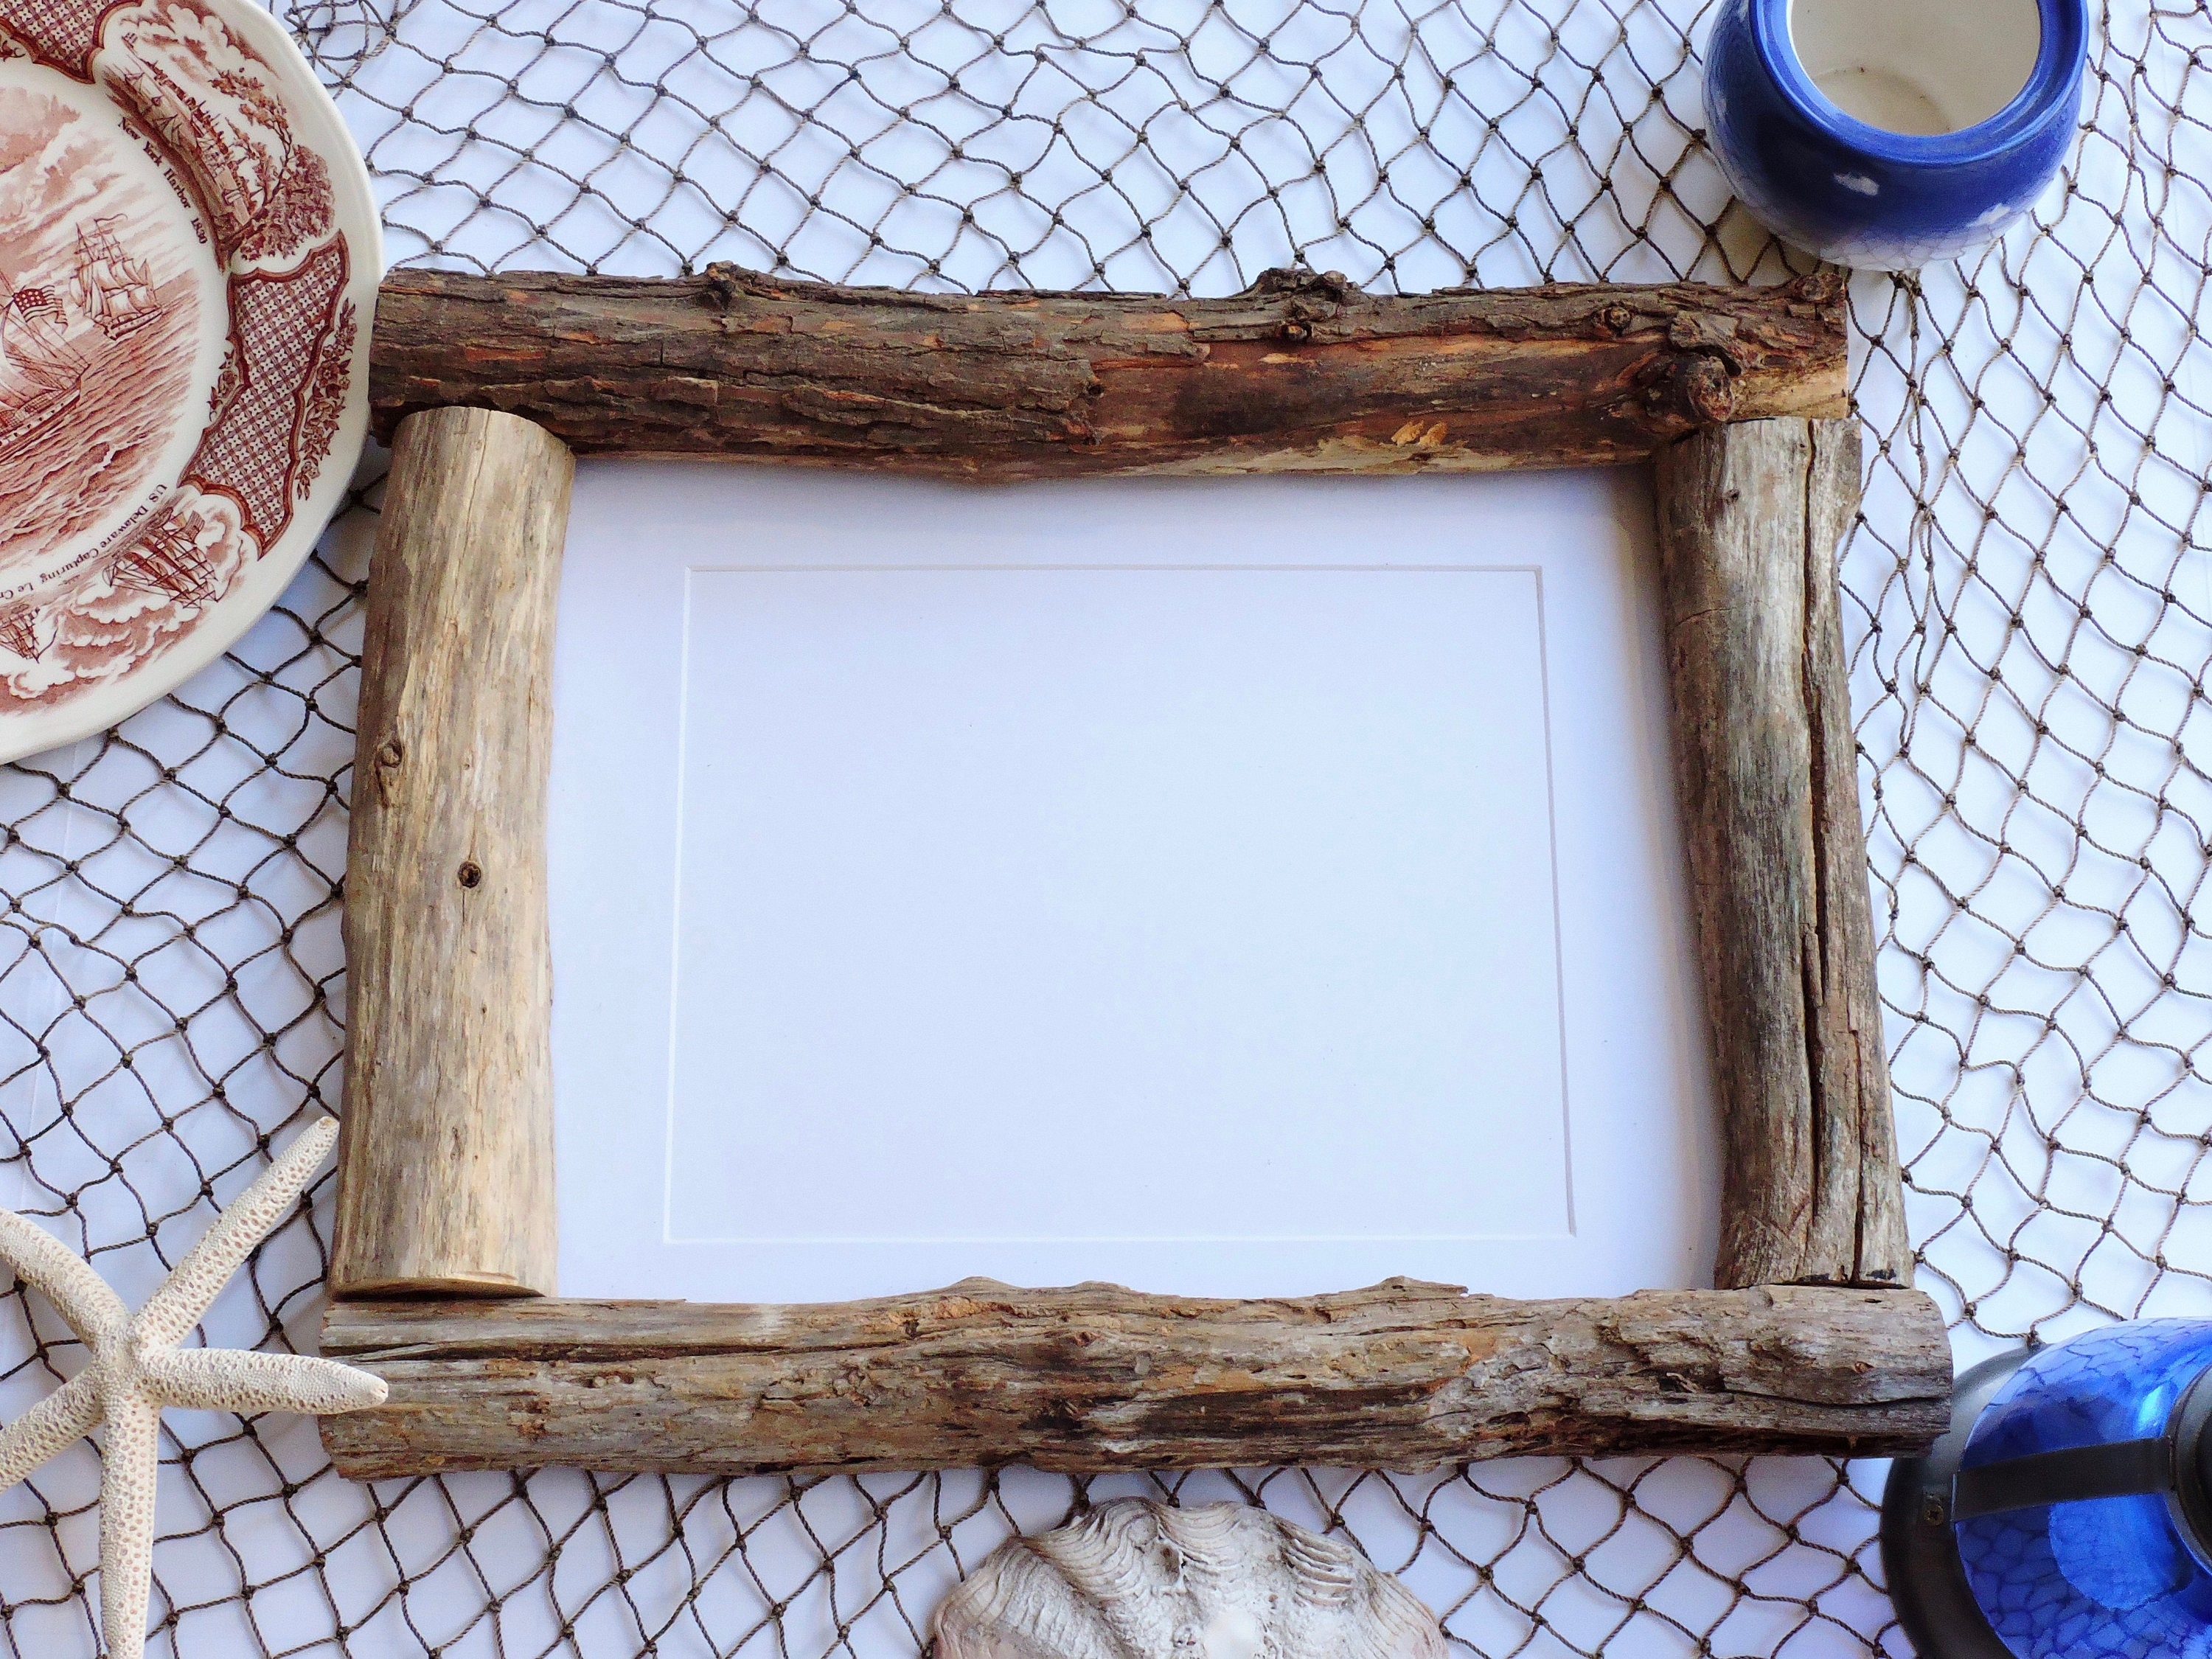 11x14 2794cmx3556cm real driftwood photo frame frankiesframeshop pl045 - Driftwood Picture Frame